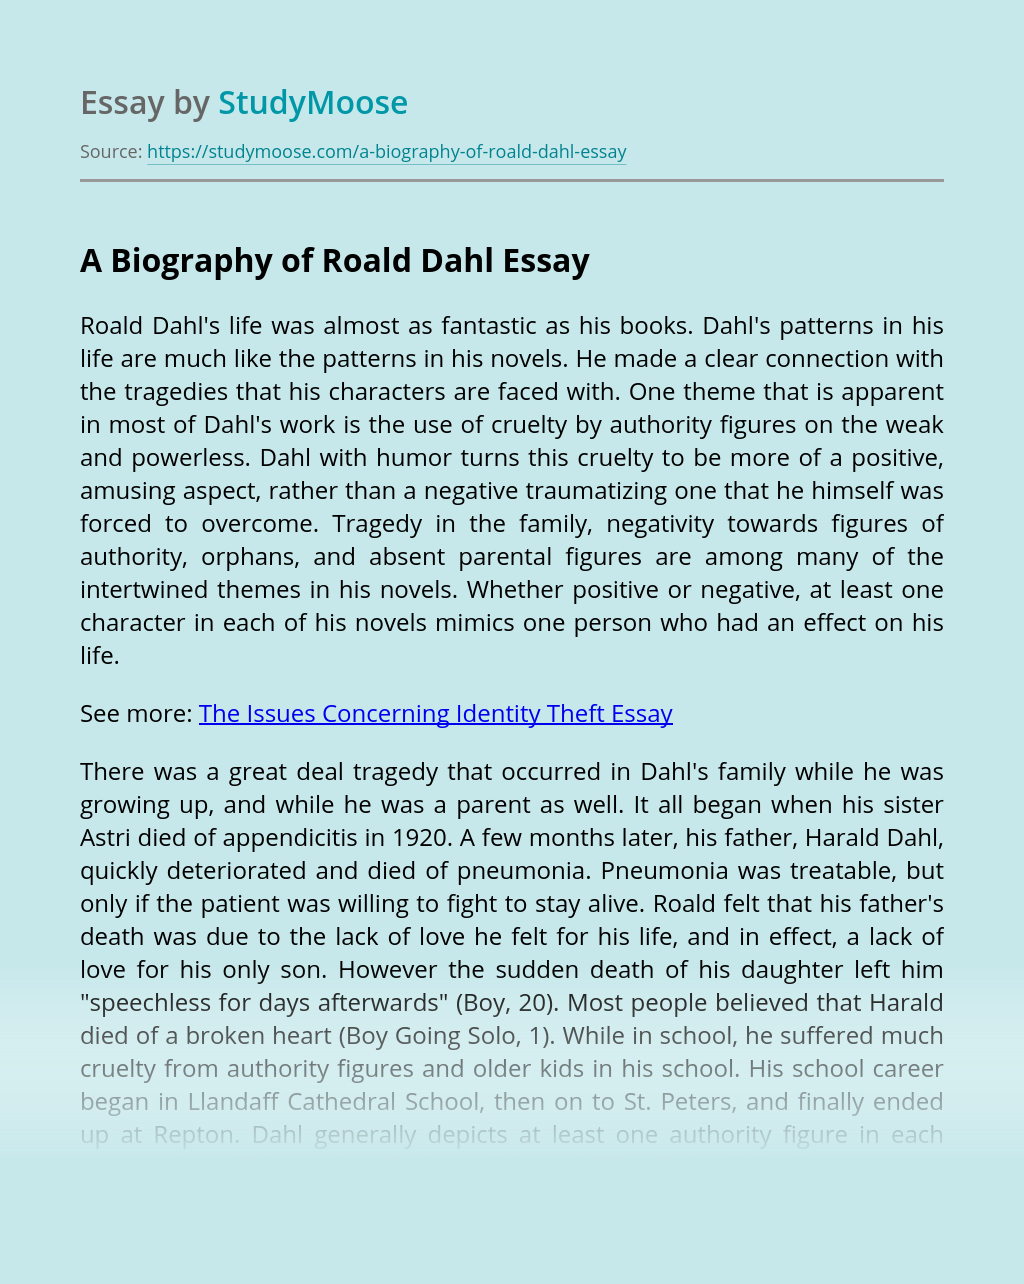 A Biography of Roald Dahl